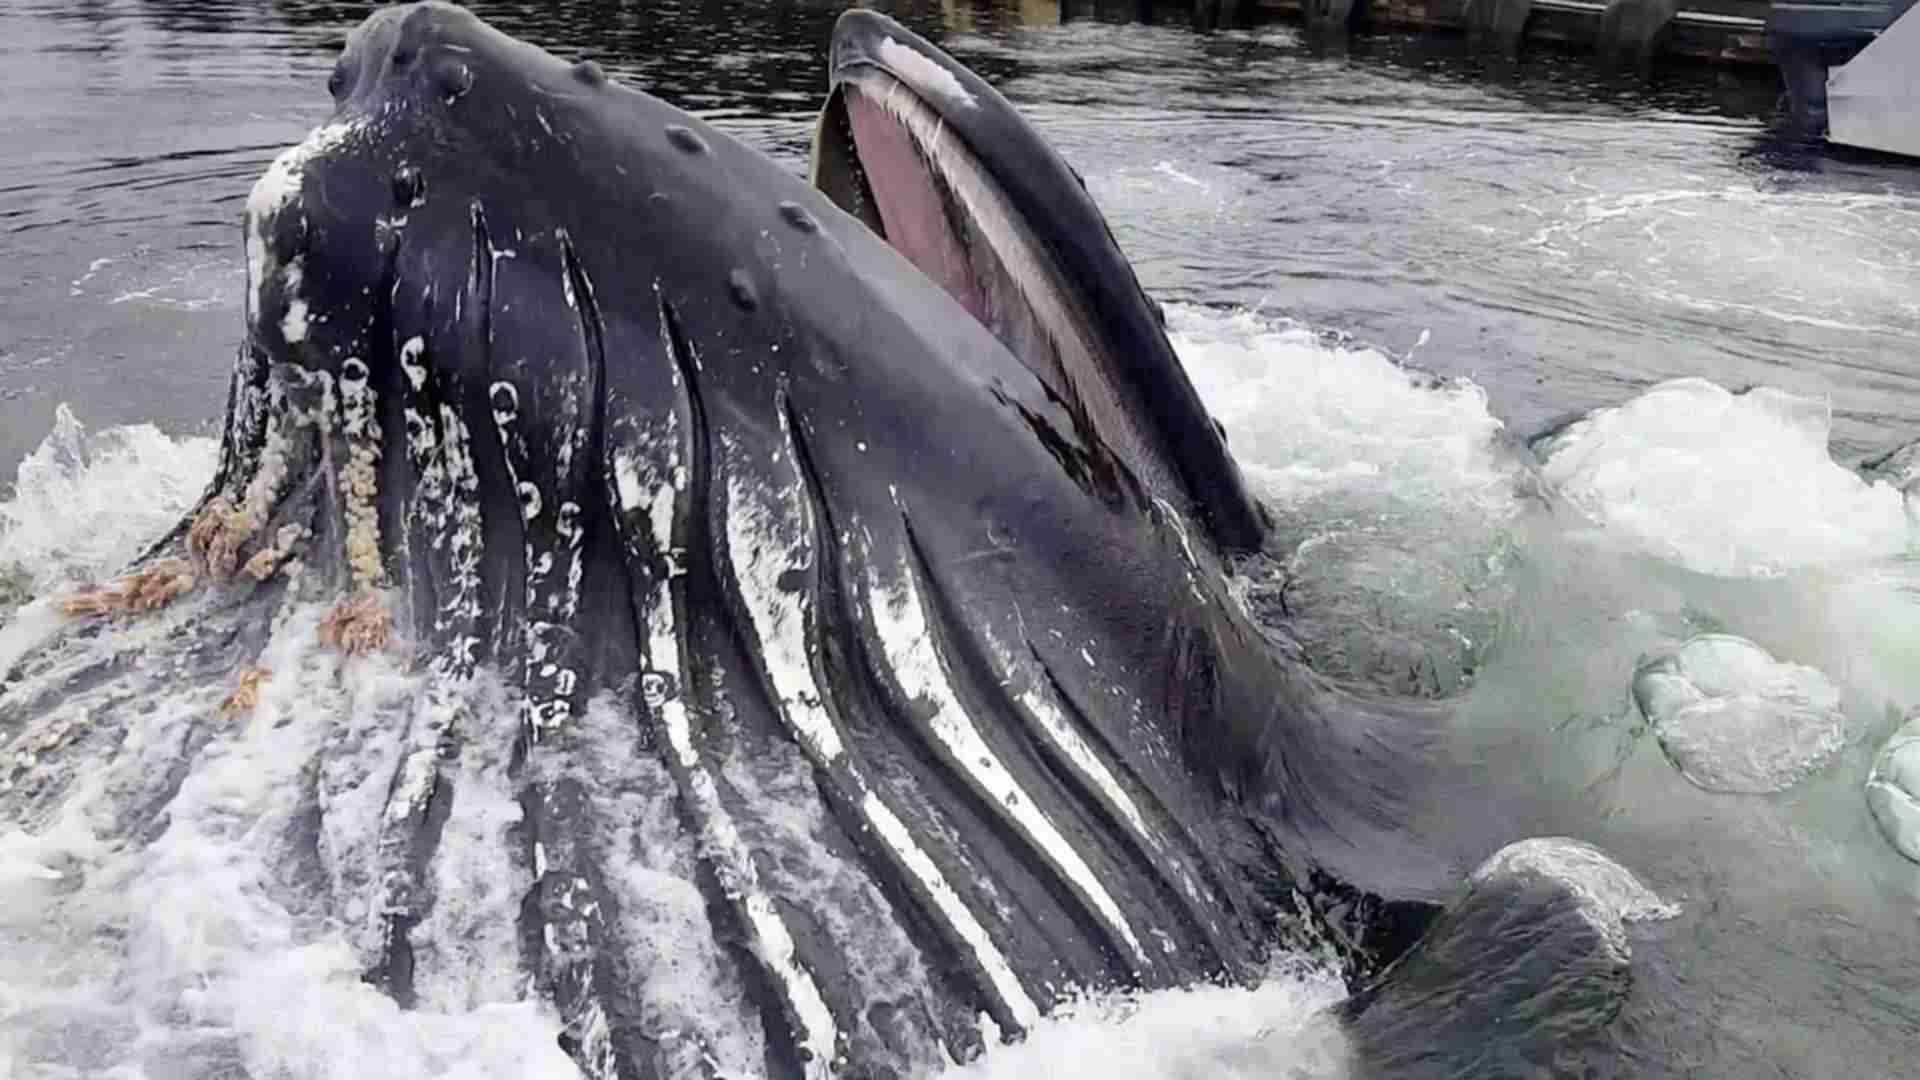 Humpback Whale Breaches Surface By Docks - YouTube